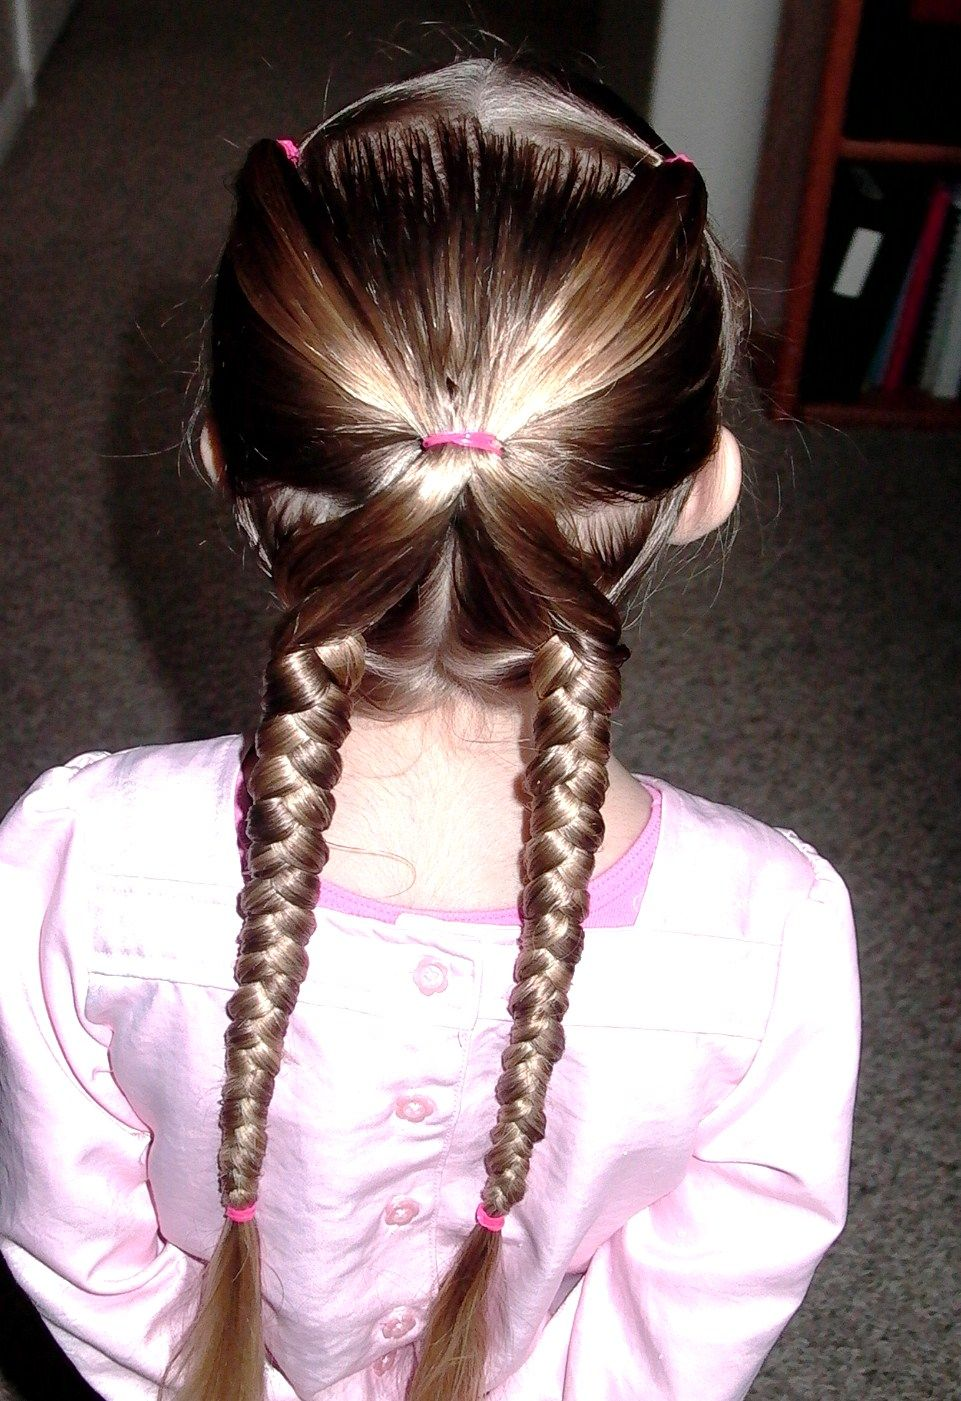 Boy hairstyle simple pic little girlus hairstyles cute and easy braid hairdo  min x